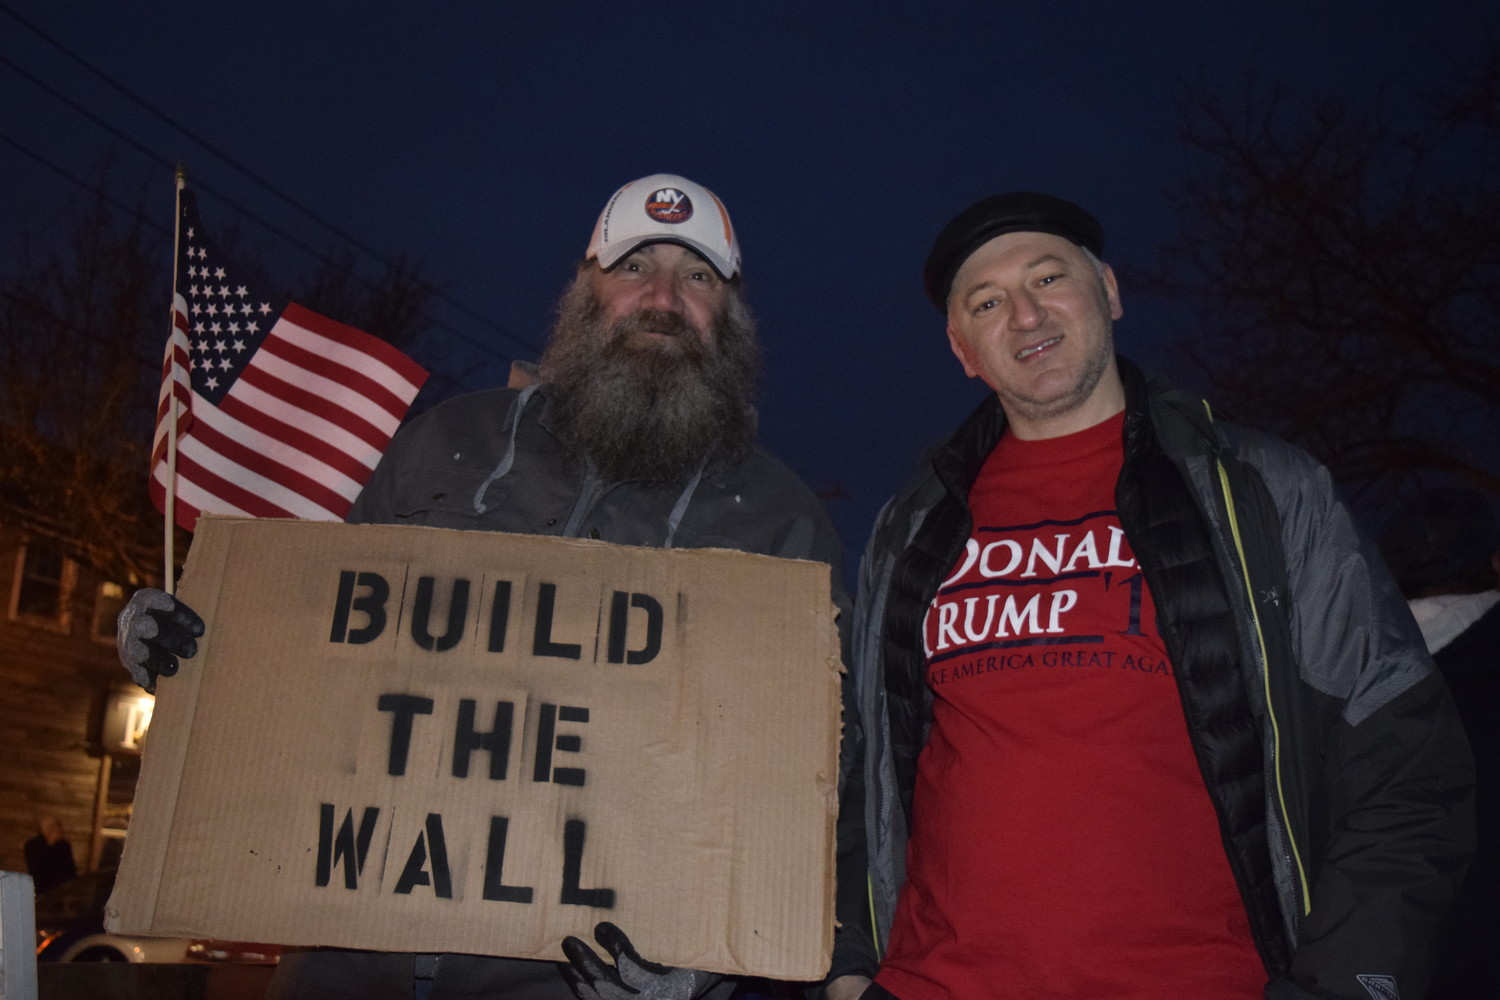 Trump supporters at a counter-protest outside Congressman Peter King's office last January.